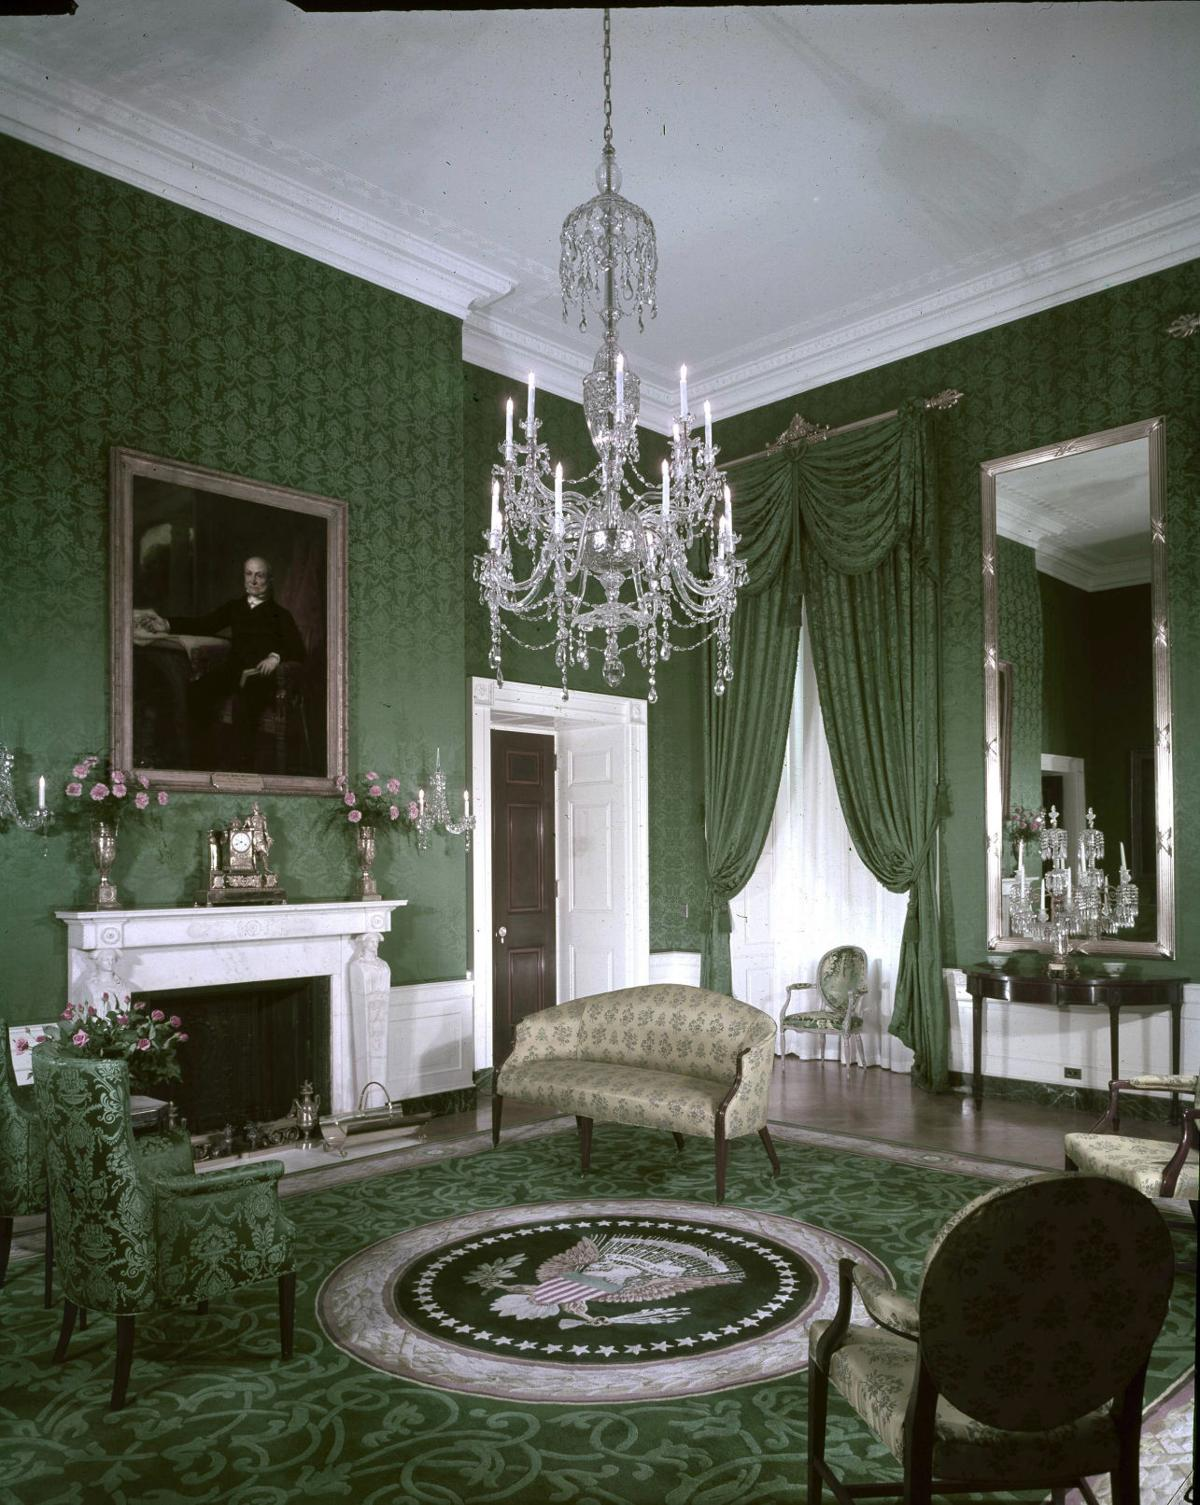 House Room Coloring Page: Photos: Inside The White House's Color-coded Rooms